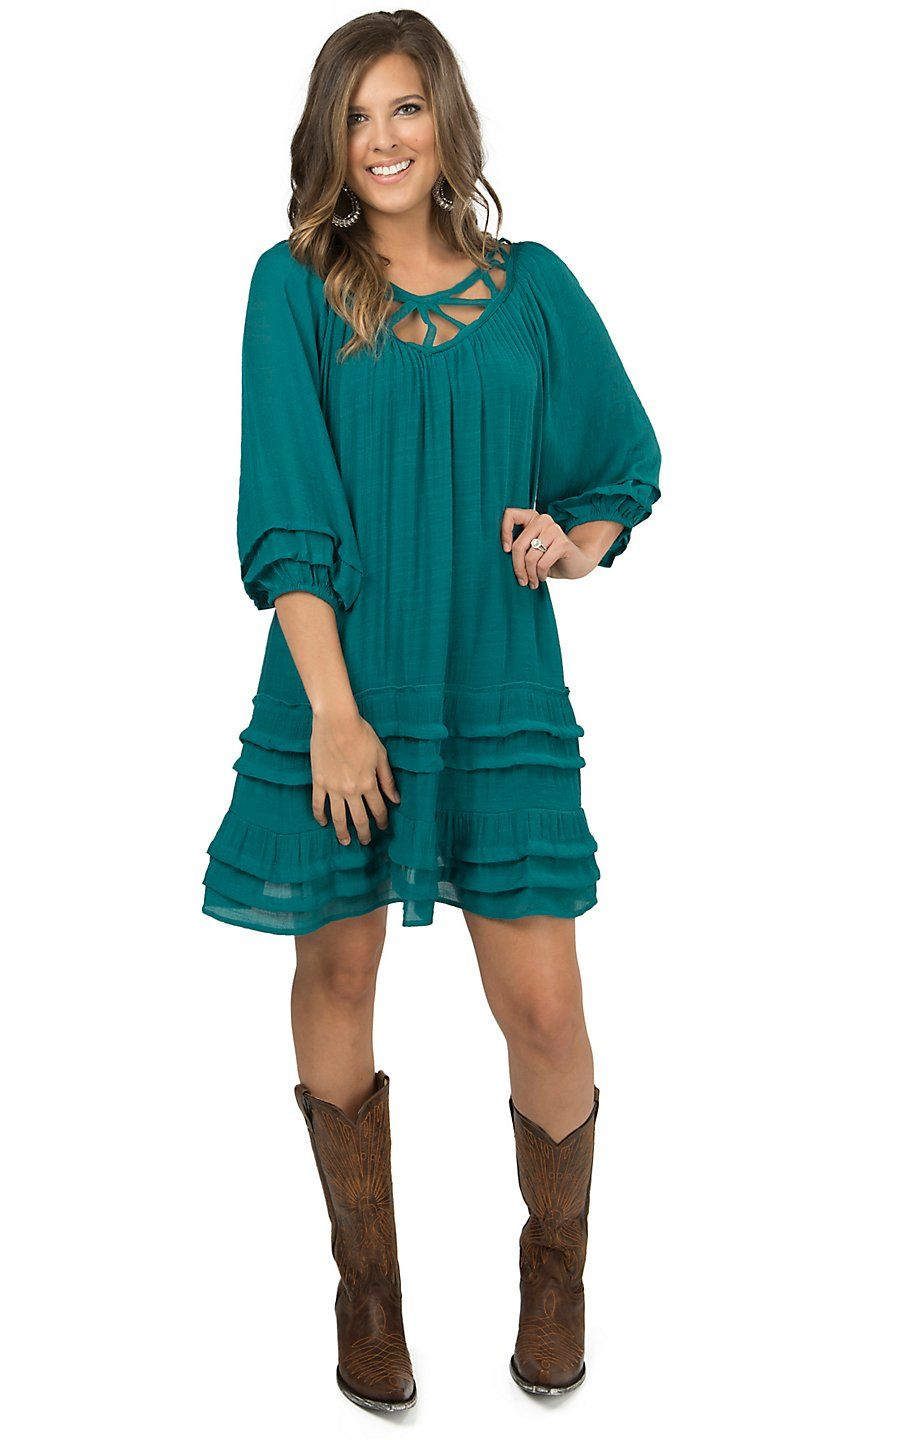 3db93a1228e Umgee Women s Jade Ruffle Cutout Neckline 3 4 Sleeve Tunic Dress - Plus  Sizes